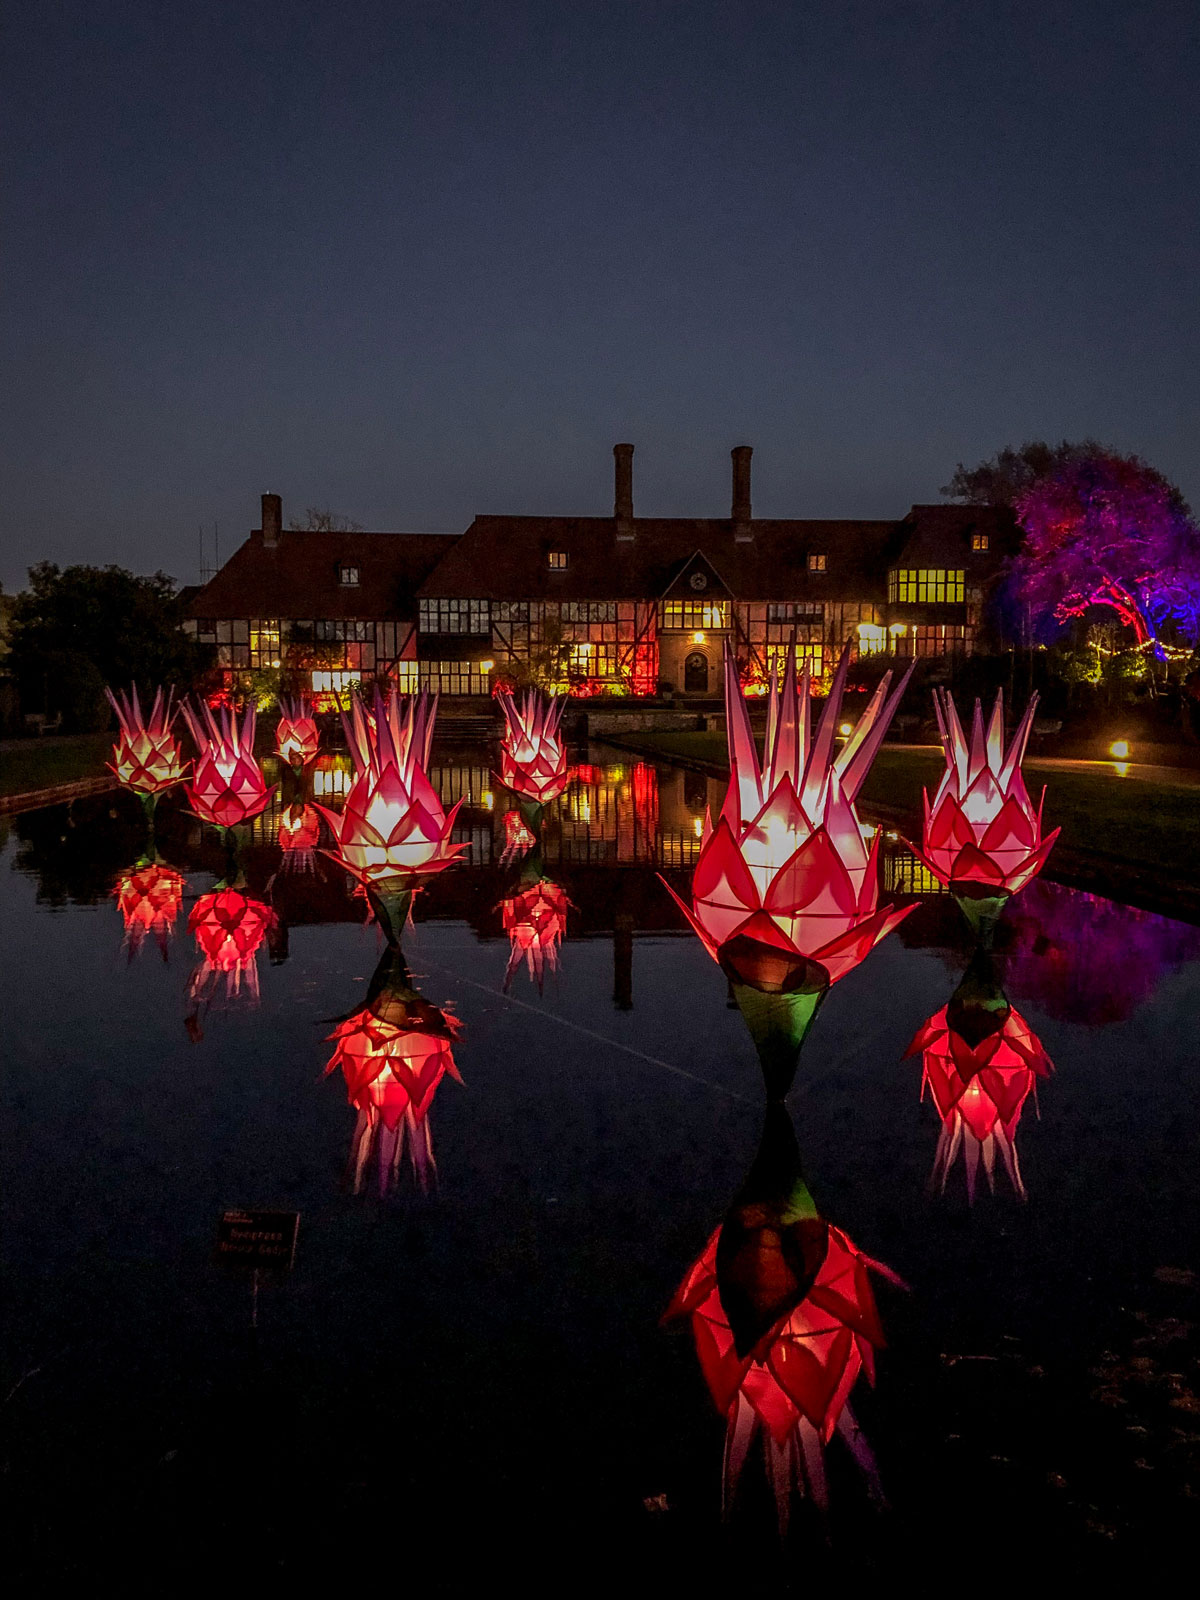 RHS Wisley Glow 2018 Laboratory Building and reflections in Jellicoe Canal.